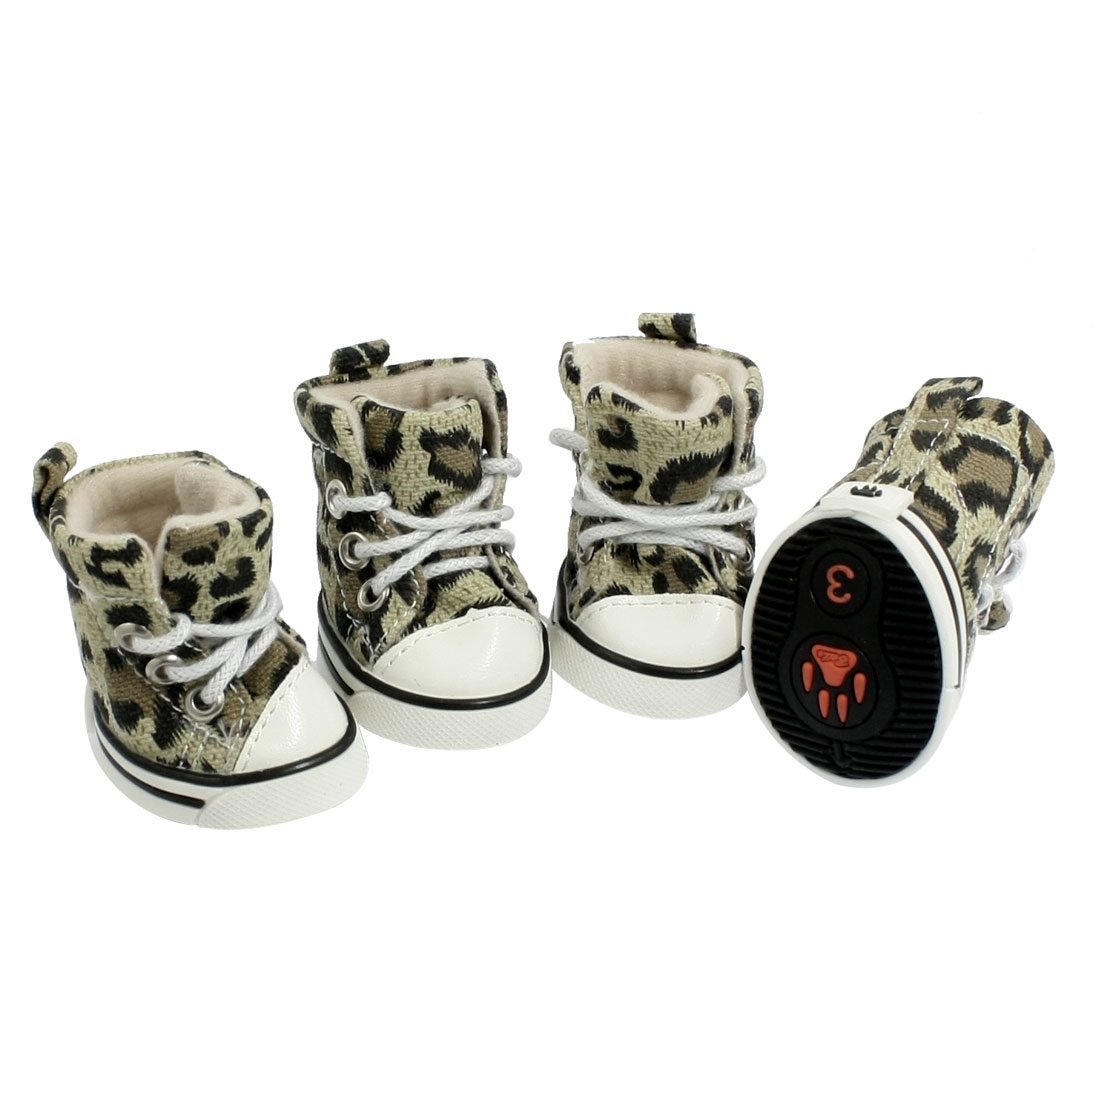 Puppy Pet Dog Booties Leopard Sports Sneakers Shoes Size 3 4 Pcs